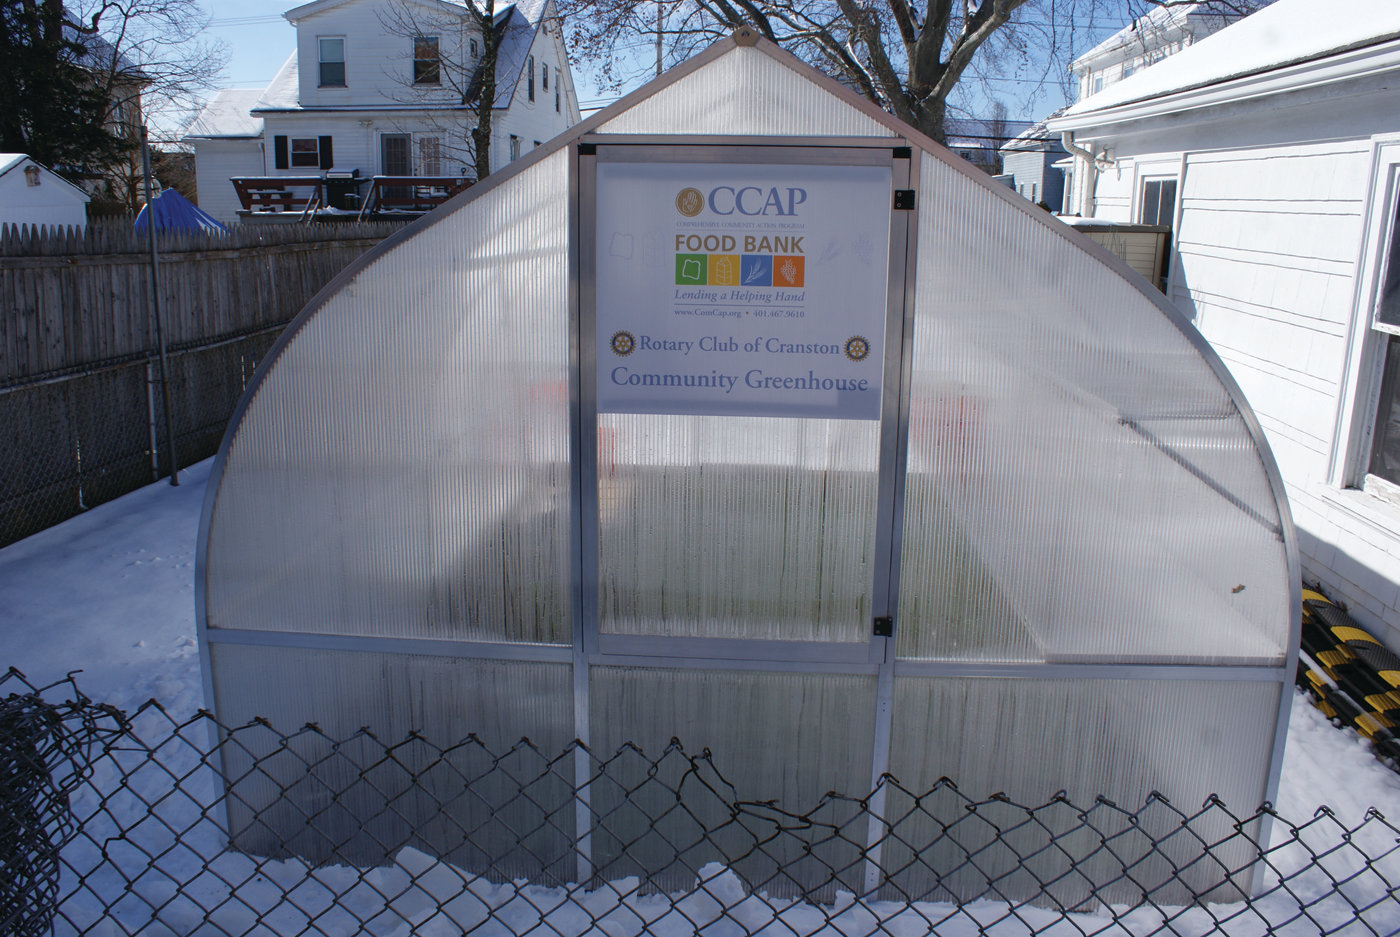 GOING 'GREEN': In addition to the Choice Food Bank at CCAP, a Community Greenhouse has been built in collaboration with the Rotary Club of Cranston.